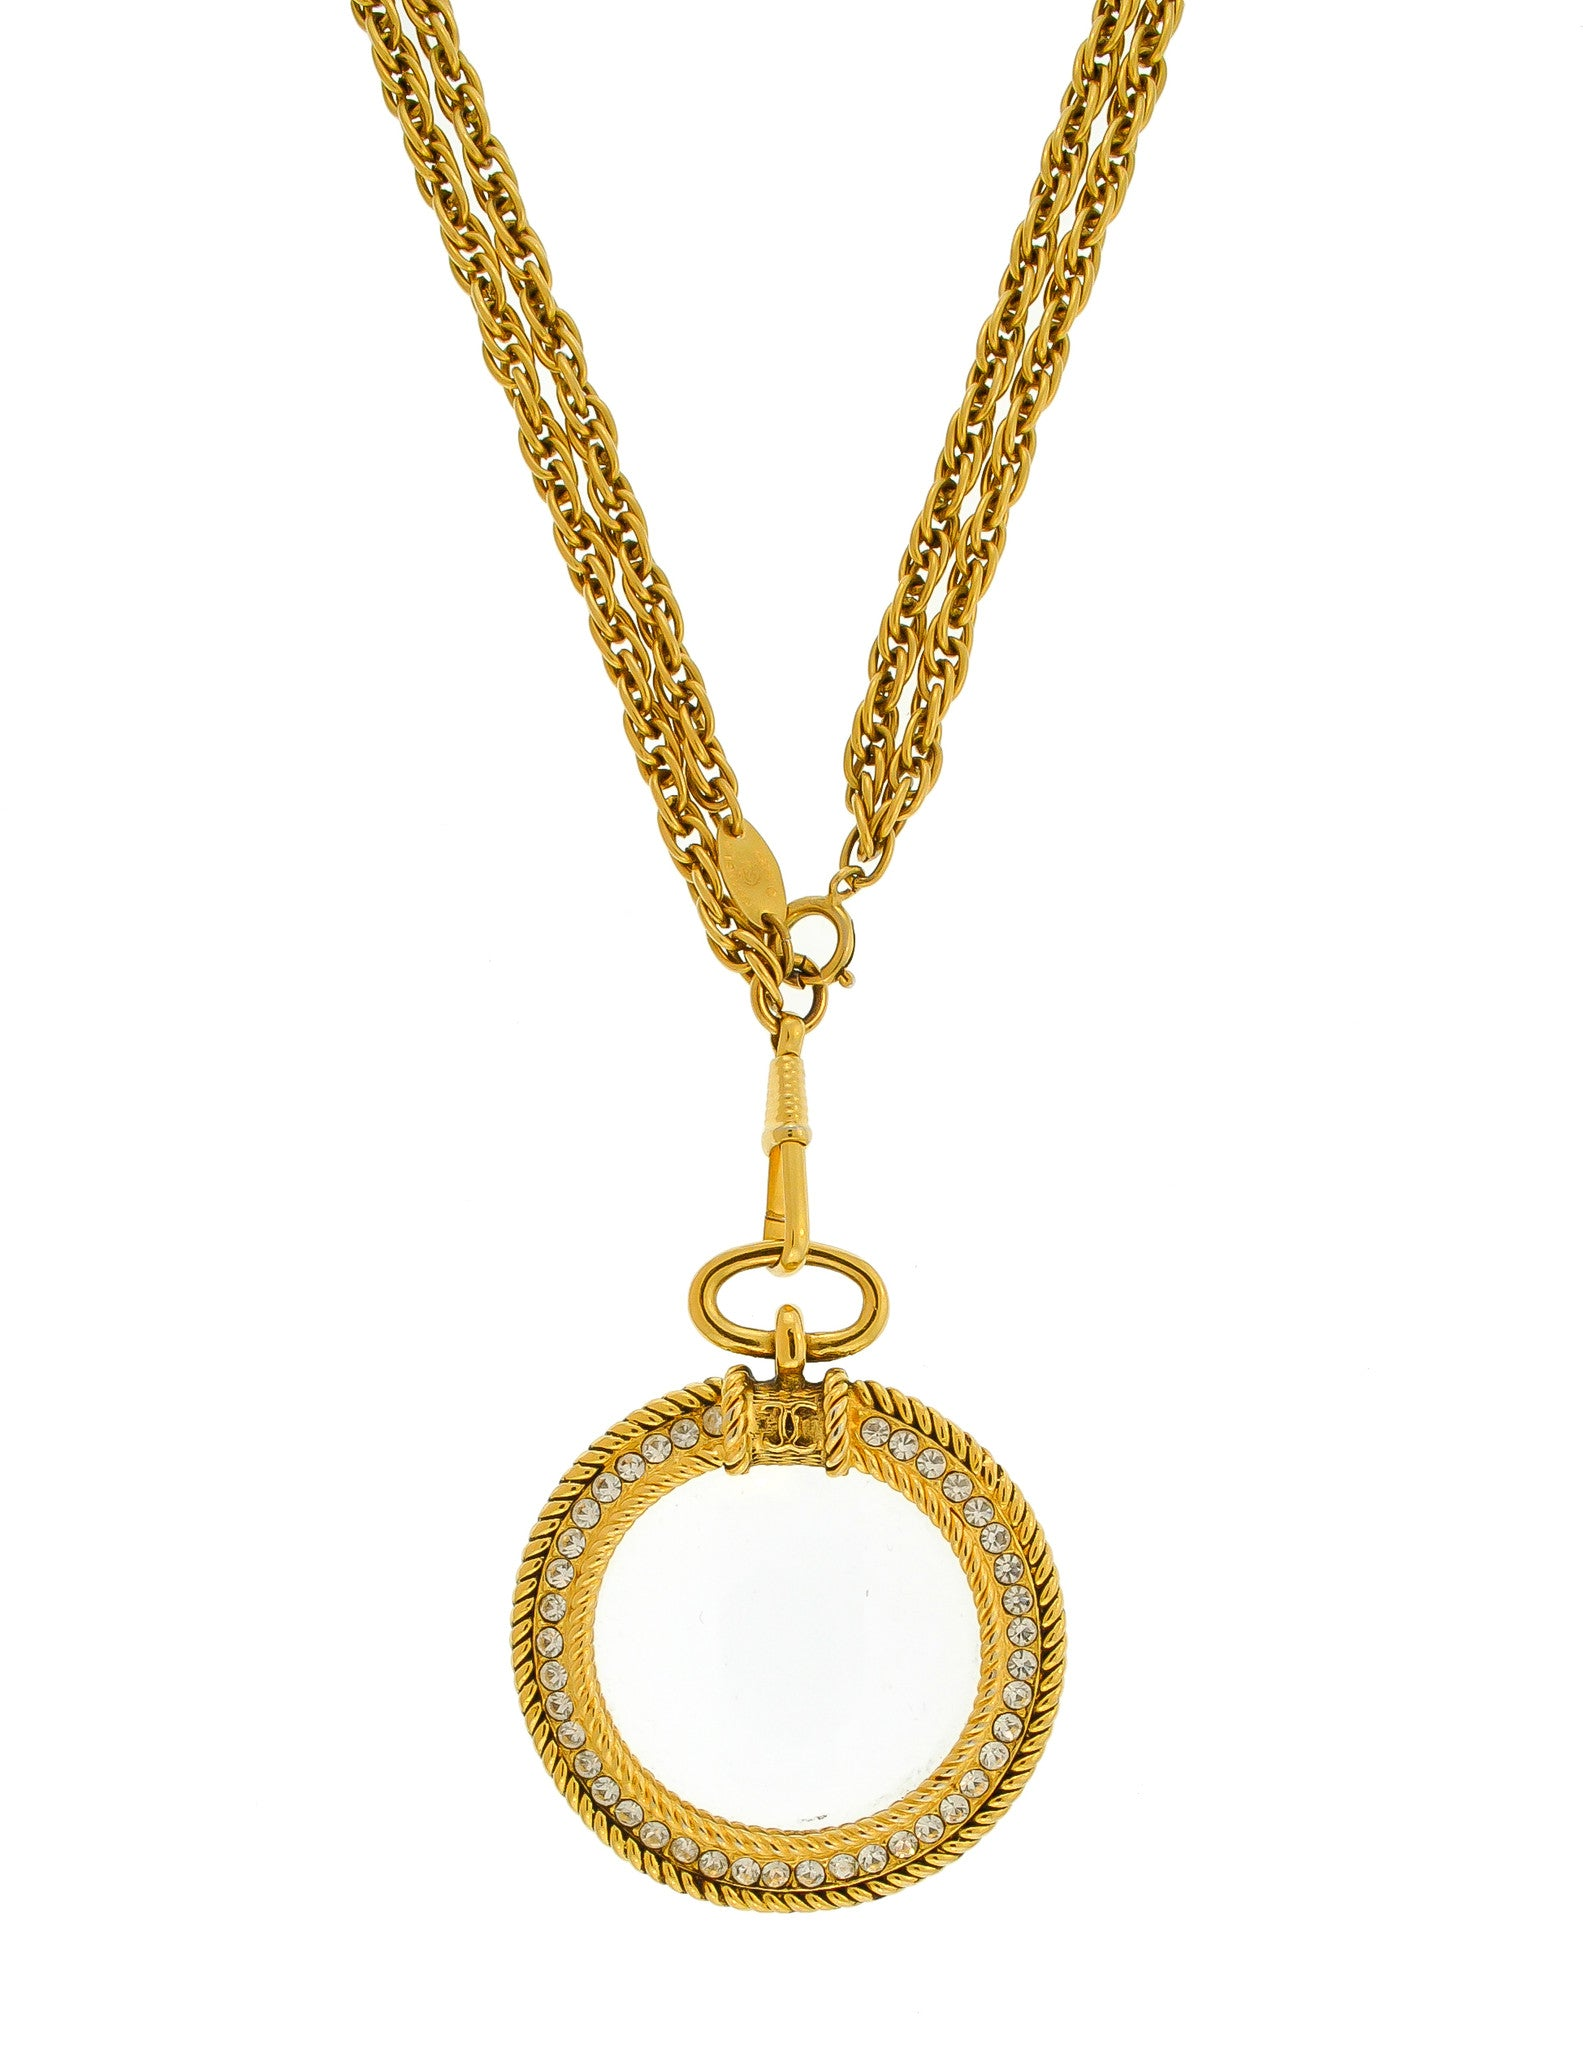 Chanel Vintage Gold Rhinestone Magnifying Glass Loupe Necklace - Amarcord Vintage Fashion  - 1